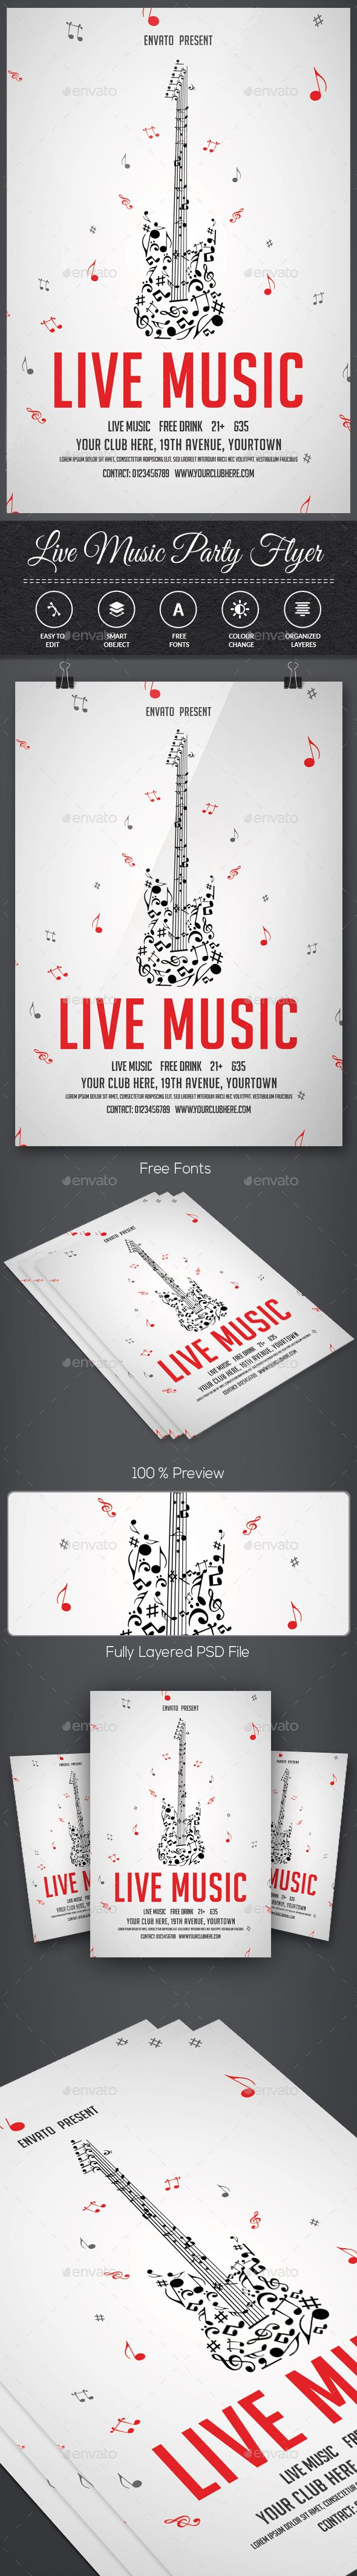 Live Music — Photoshop PSD #club #festival • Available here → https://graphicriver.net/item/live-music/14977821?ref=pxcr